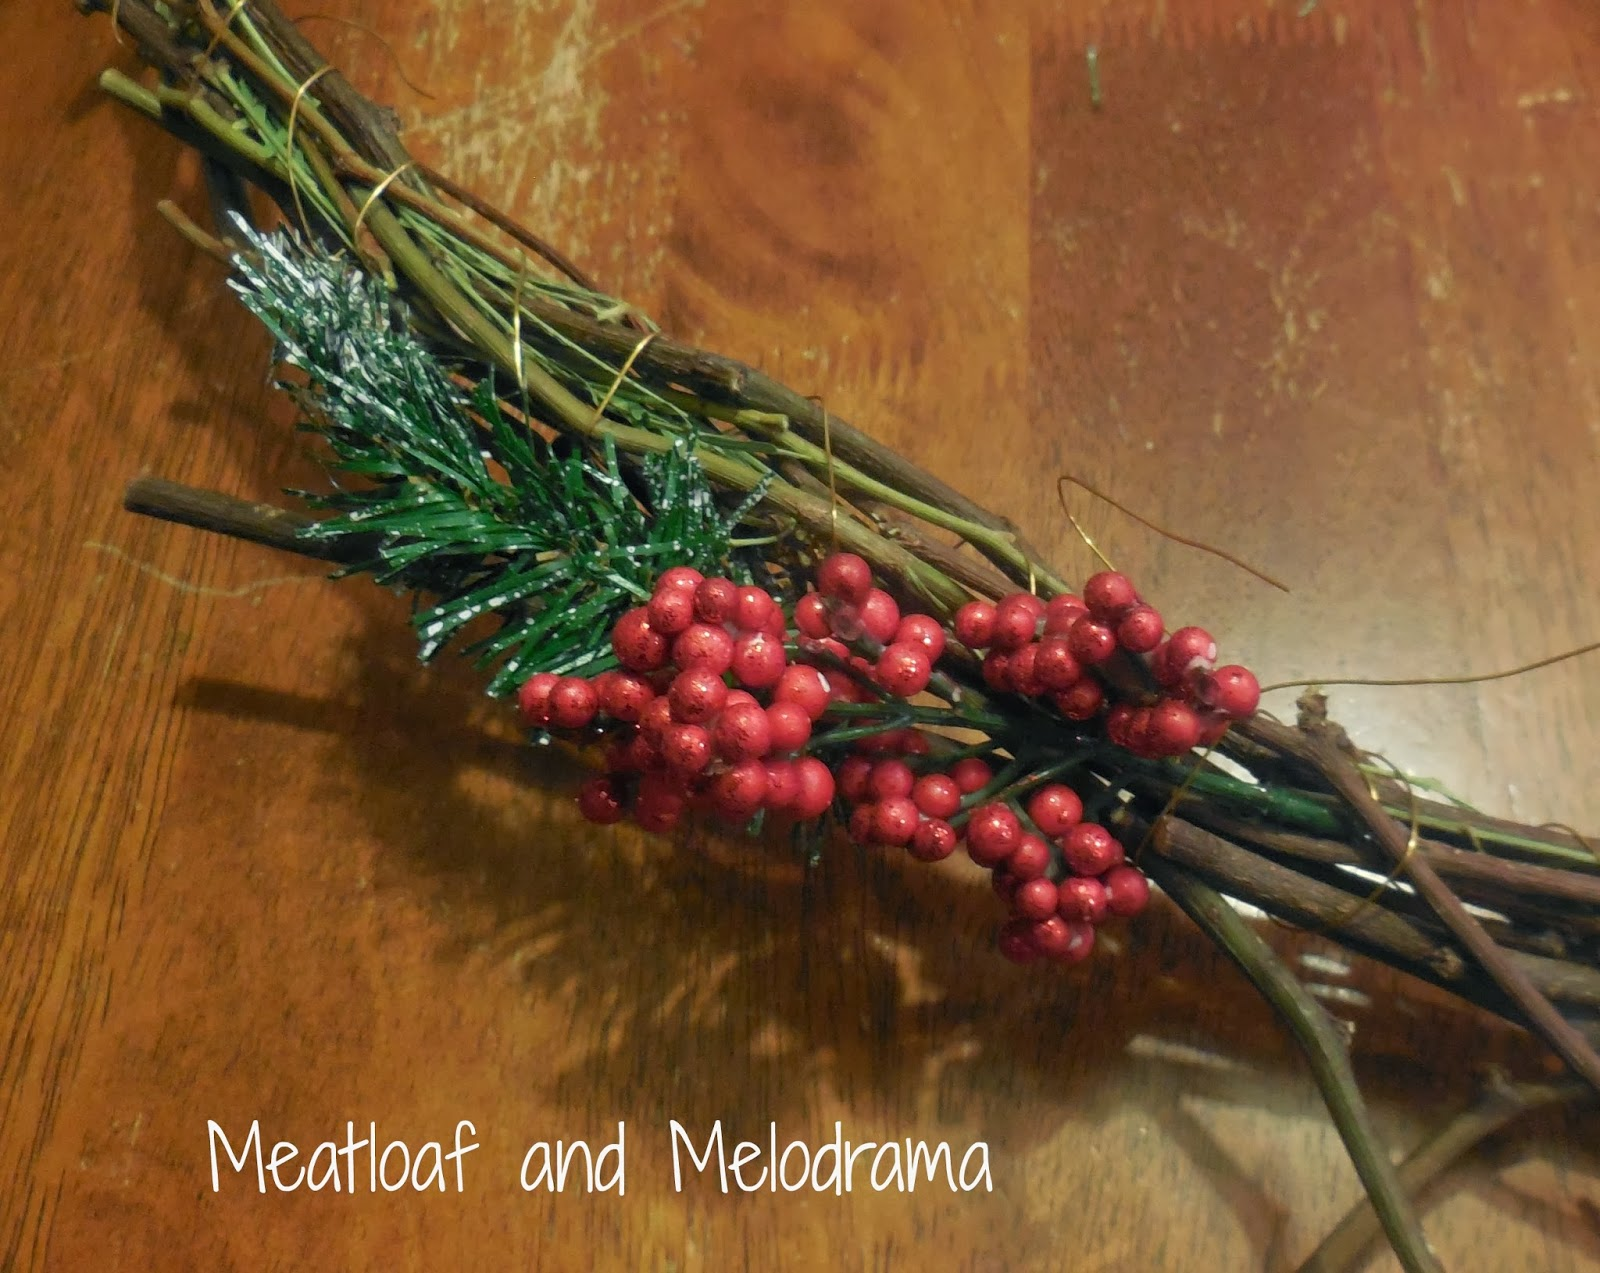 Rustic Christmas Wreath Diy.Diy Rustic Christmas Wreath Meatloaf And Melodrama